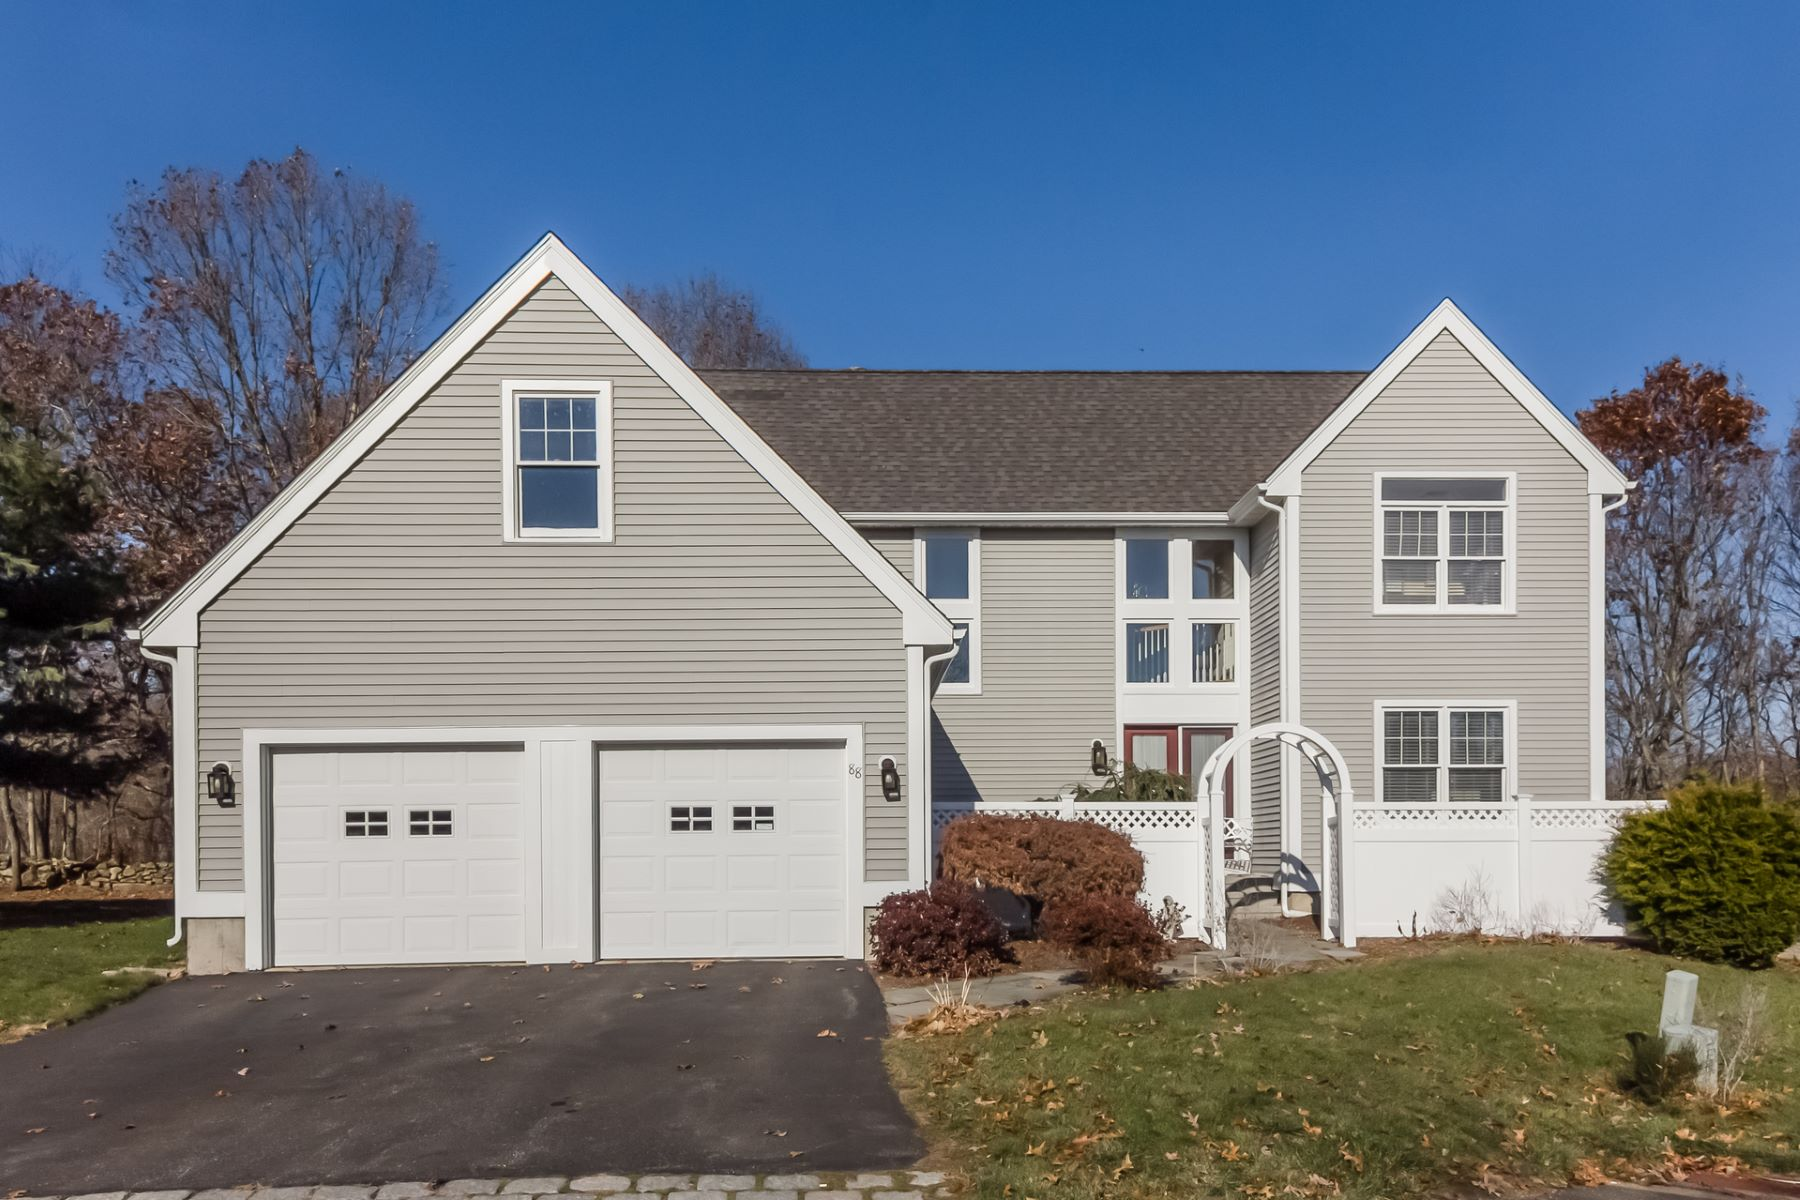 Condominium for Sale at Easy Living 88 Sconset Lane, Guilford, Connecticut, 06437 United States